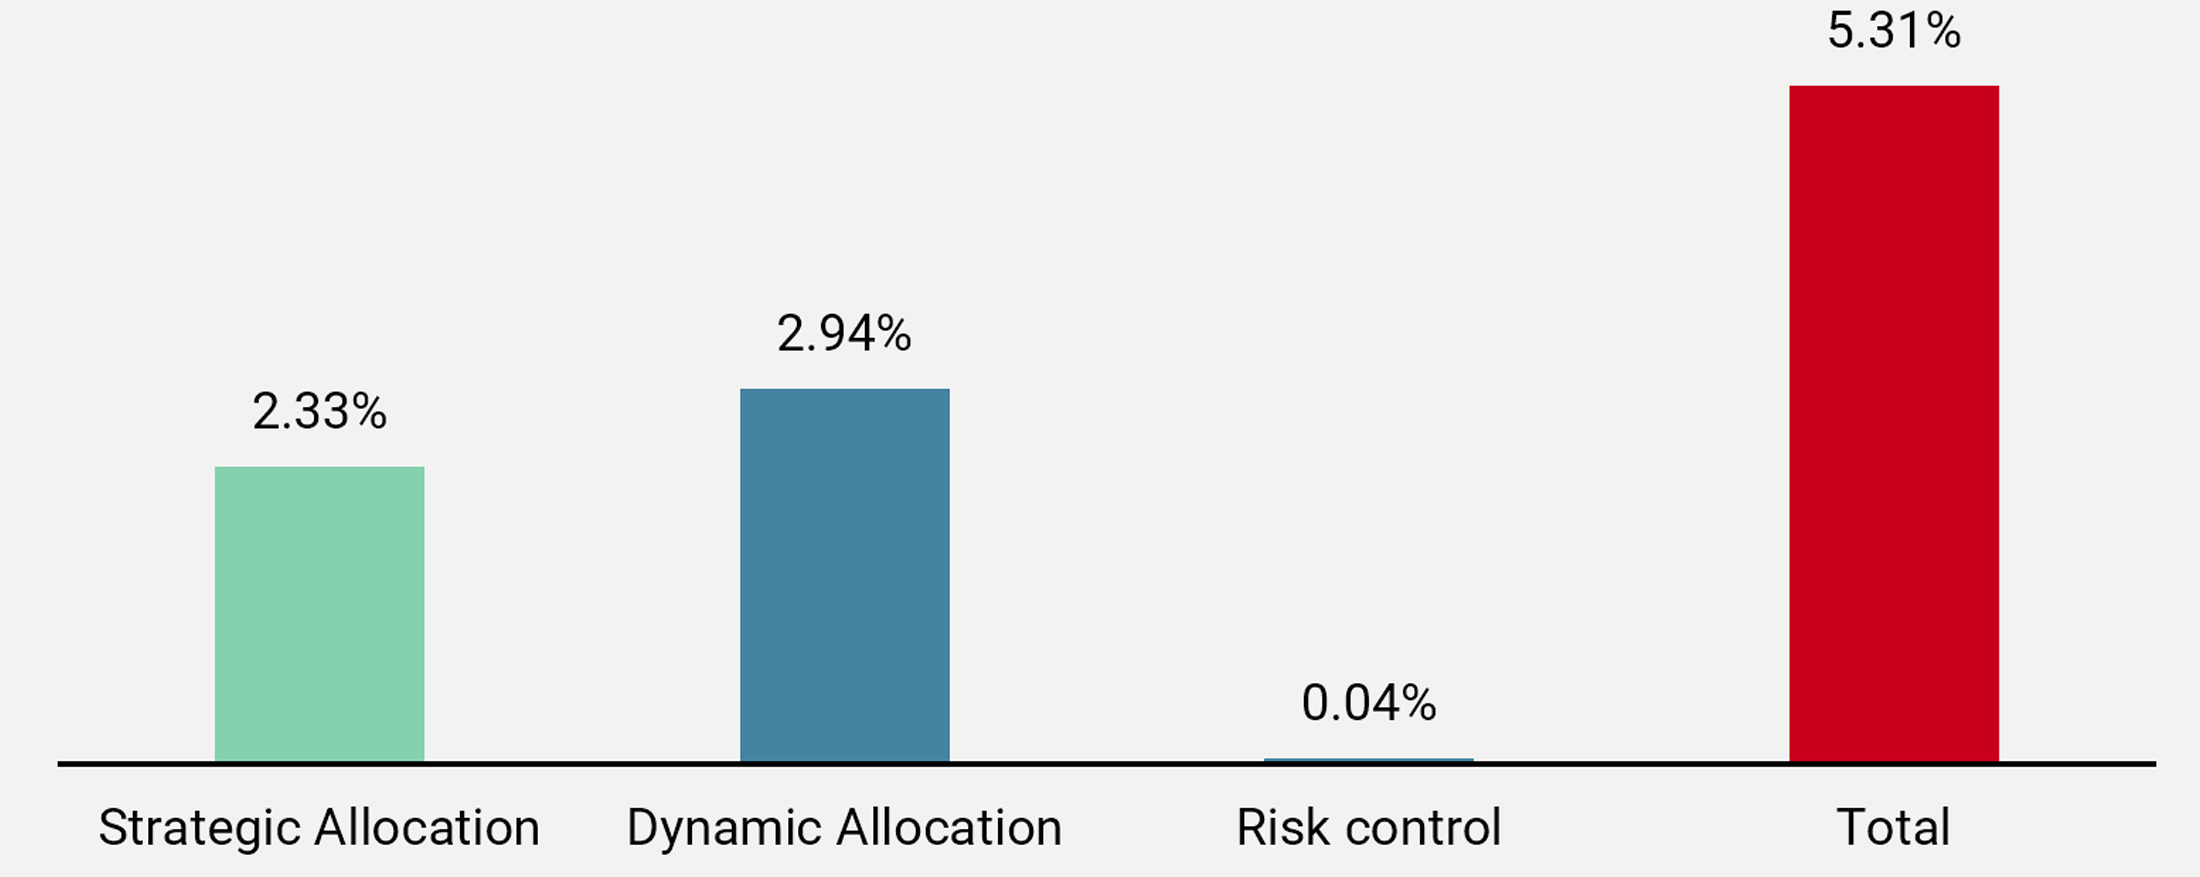 Figure 2: 2019 Uni-Global Alternative Risk Premia Fund Performance by Books